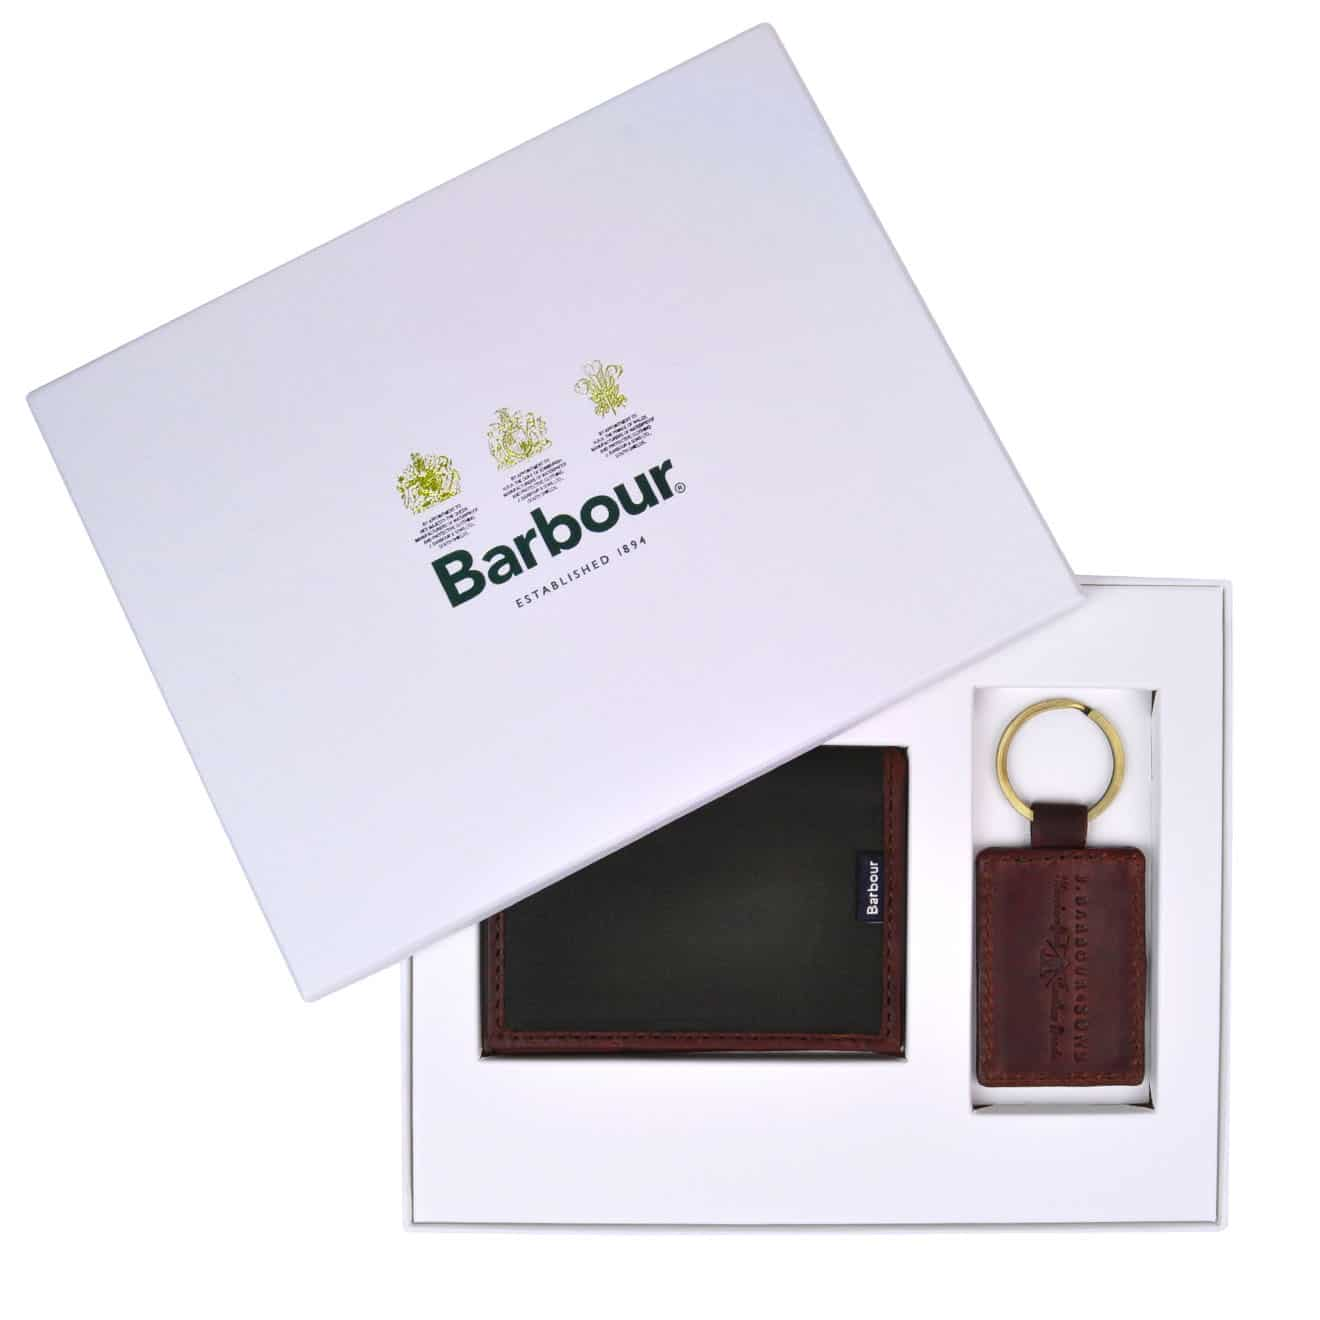 Barbour Drywax Card Holder and Keyring Gift Set - Parasol Store